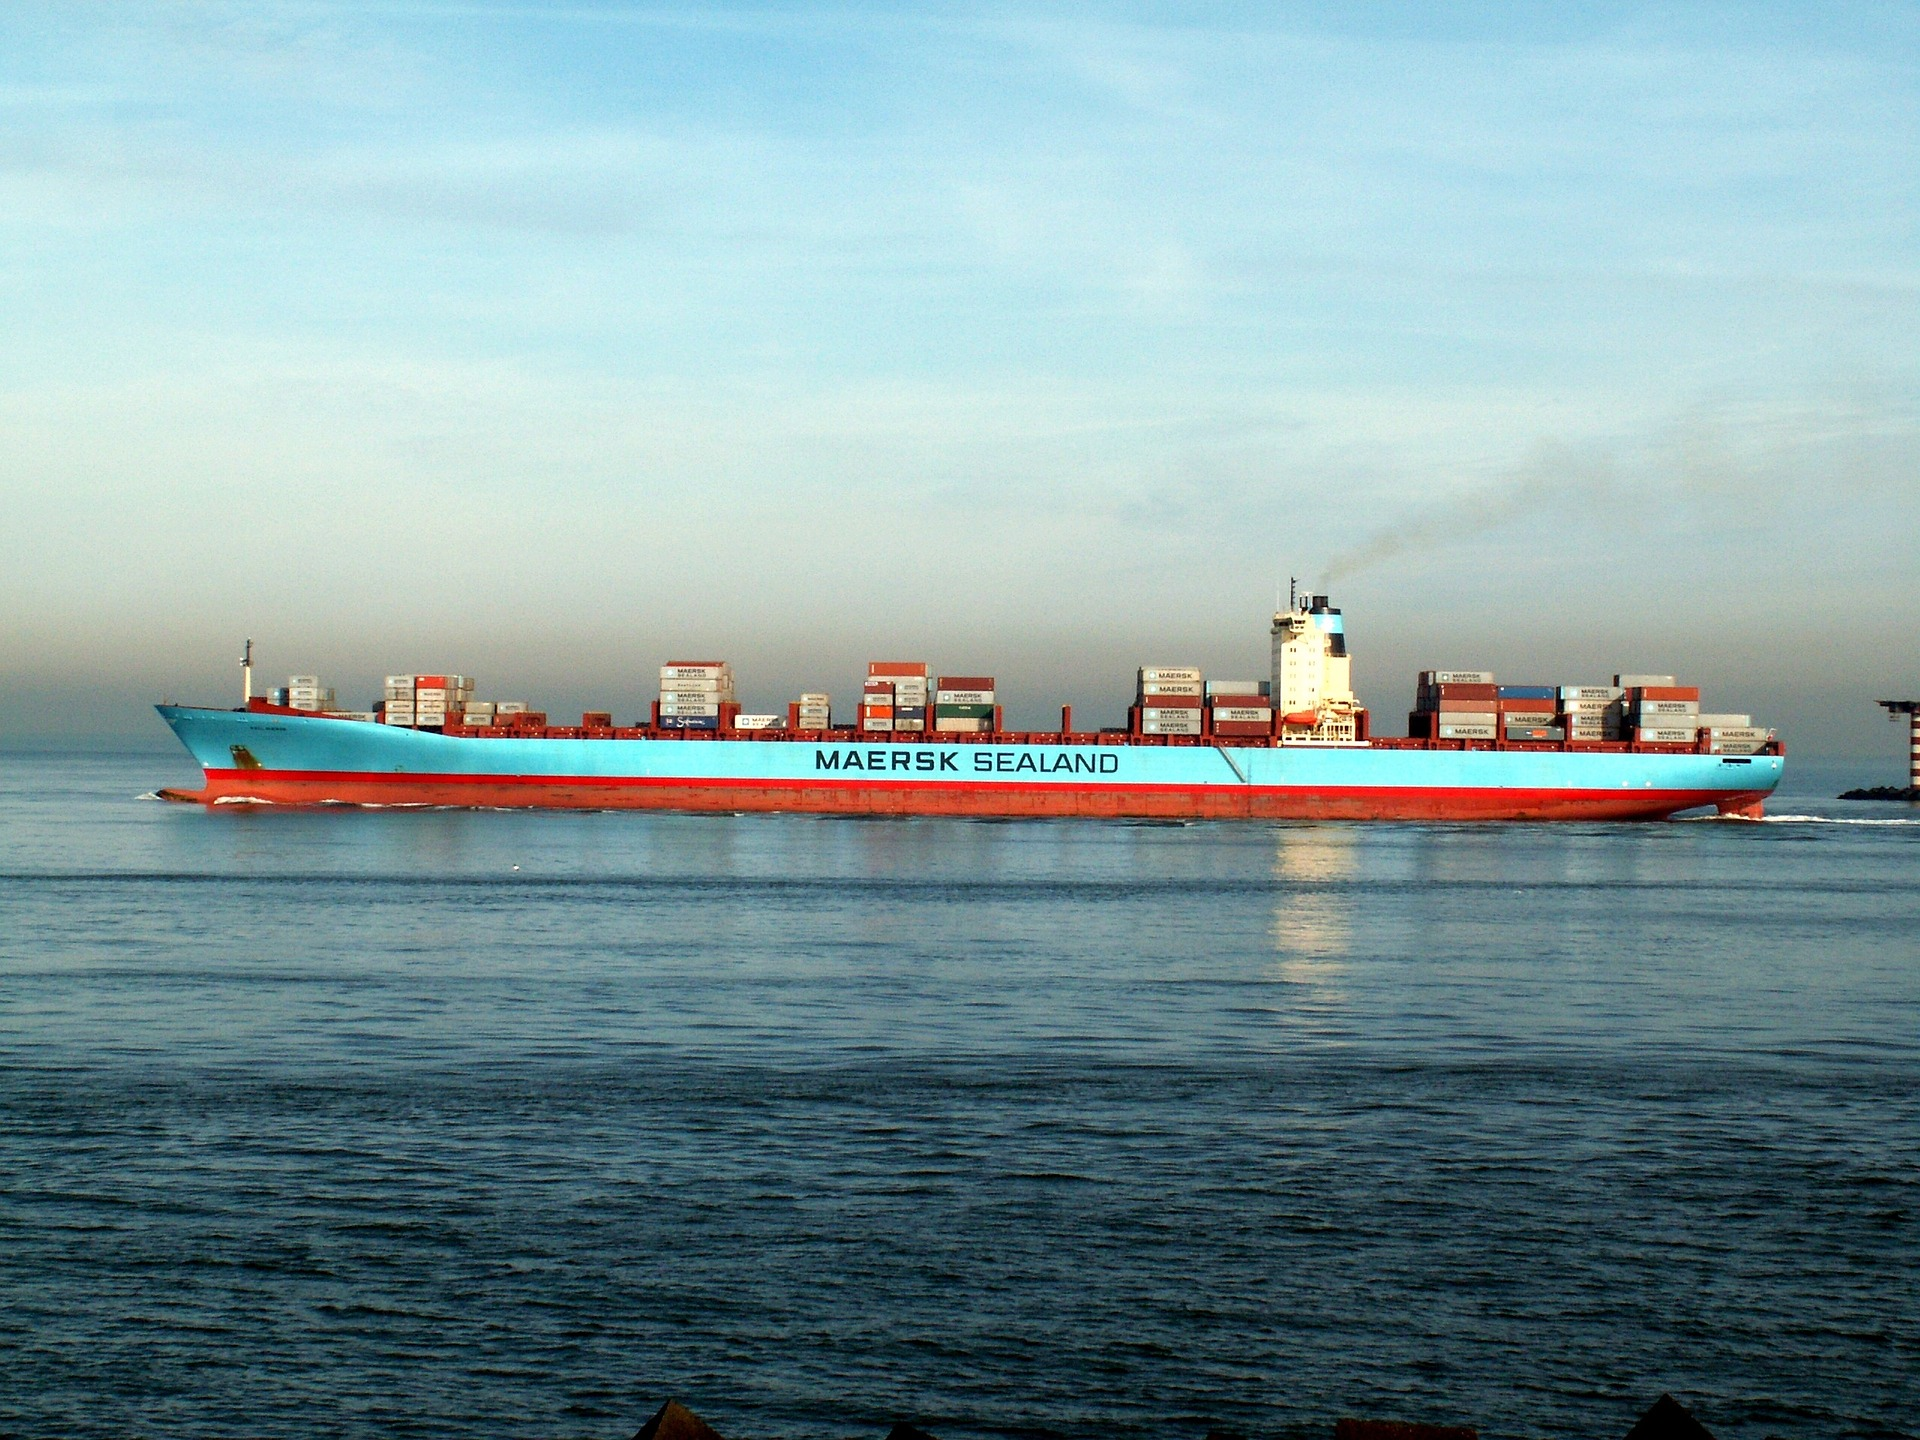 Shipping lines are going digital